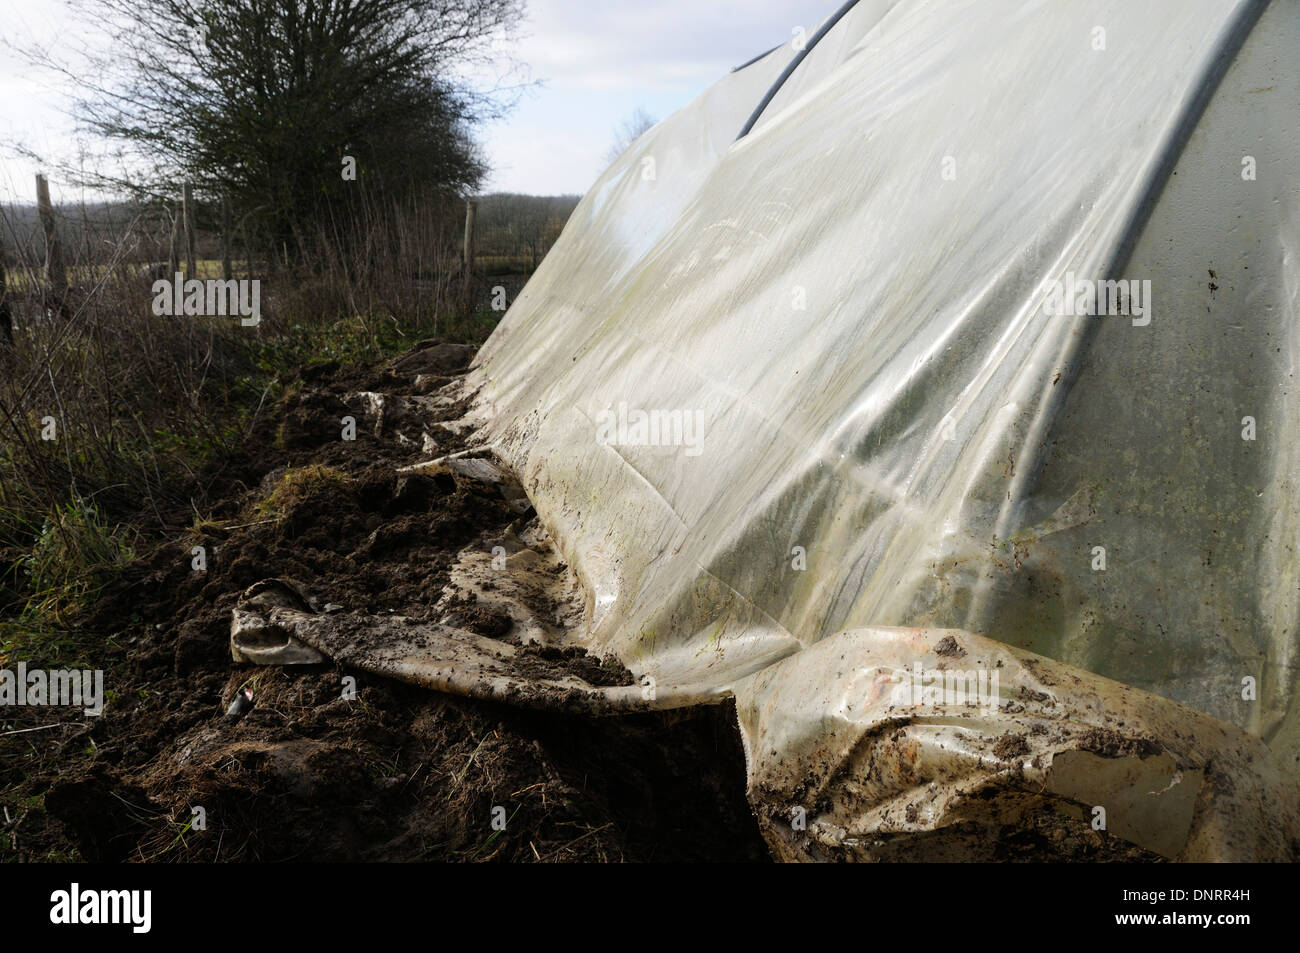 A used and torn polytunnel in need of replacement - Stock Image